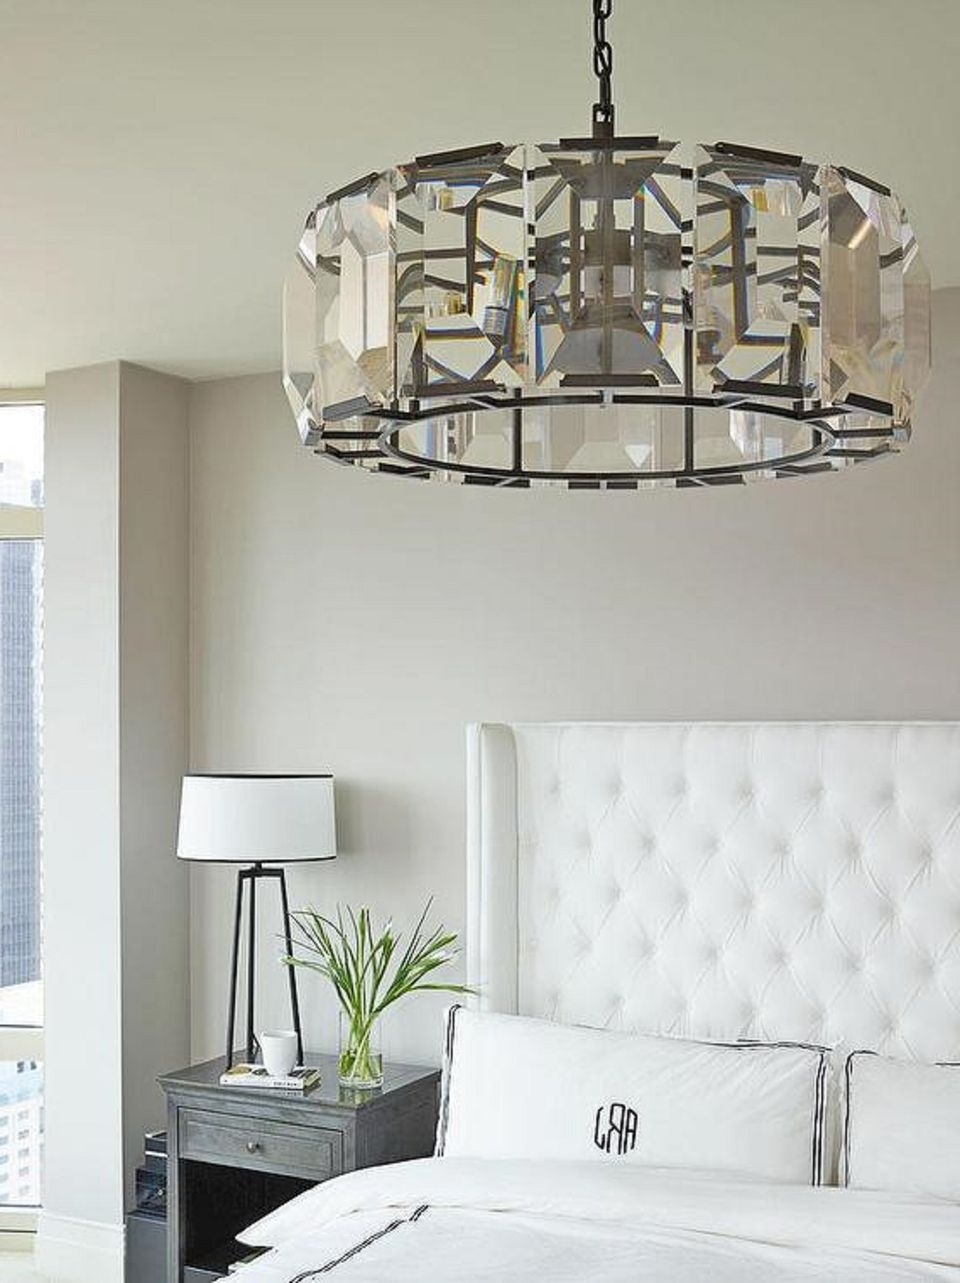 Light Fixture : Chandeliers For Girls Bedroom Ceiling Lights For In 2017 Chandelier Night Stand Lamps (View 11 of 15)